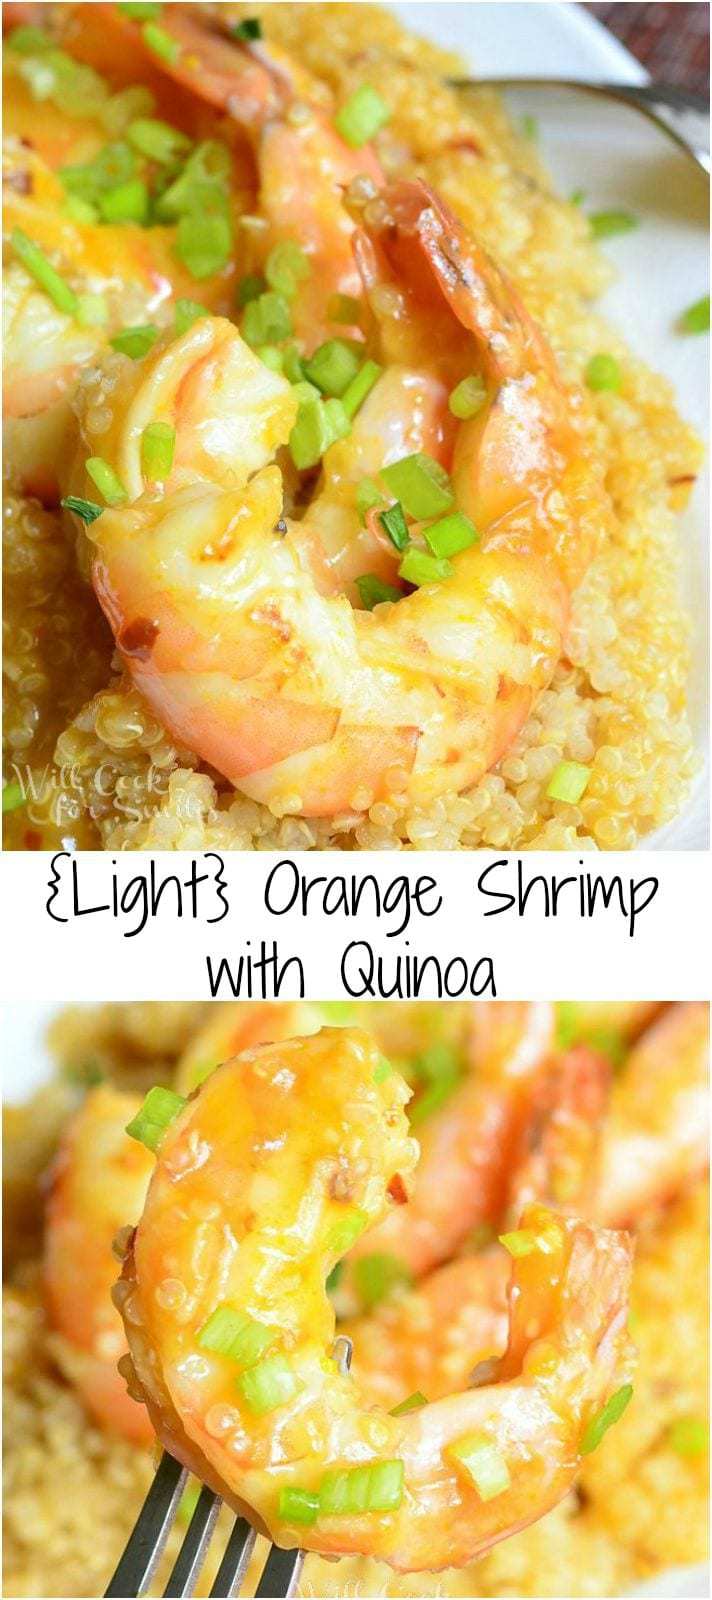 Orange Shrimp with Quinoa in a white bowl photo collage